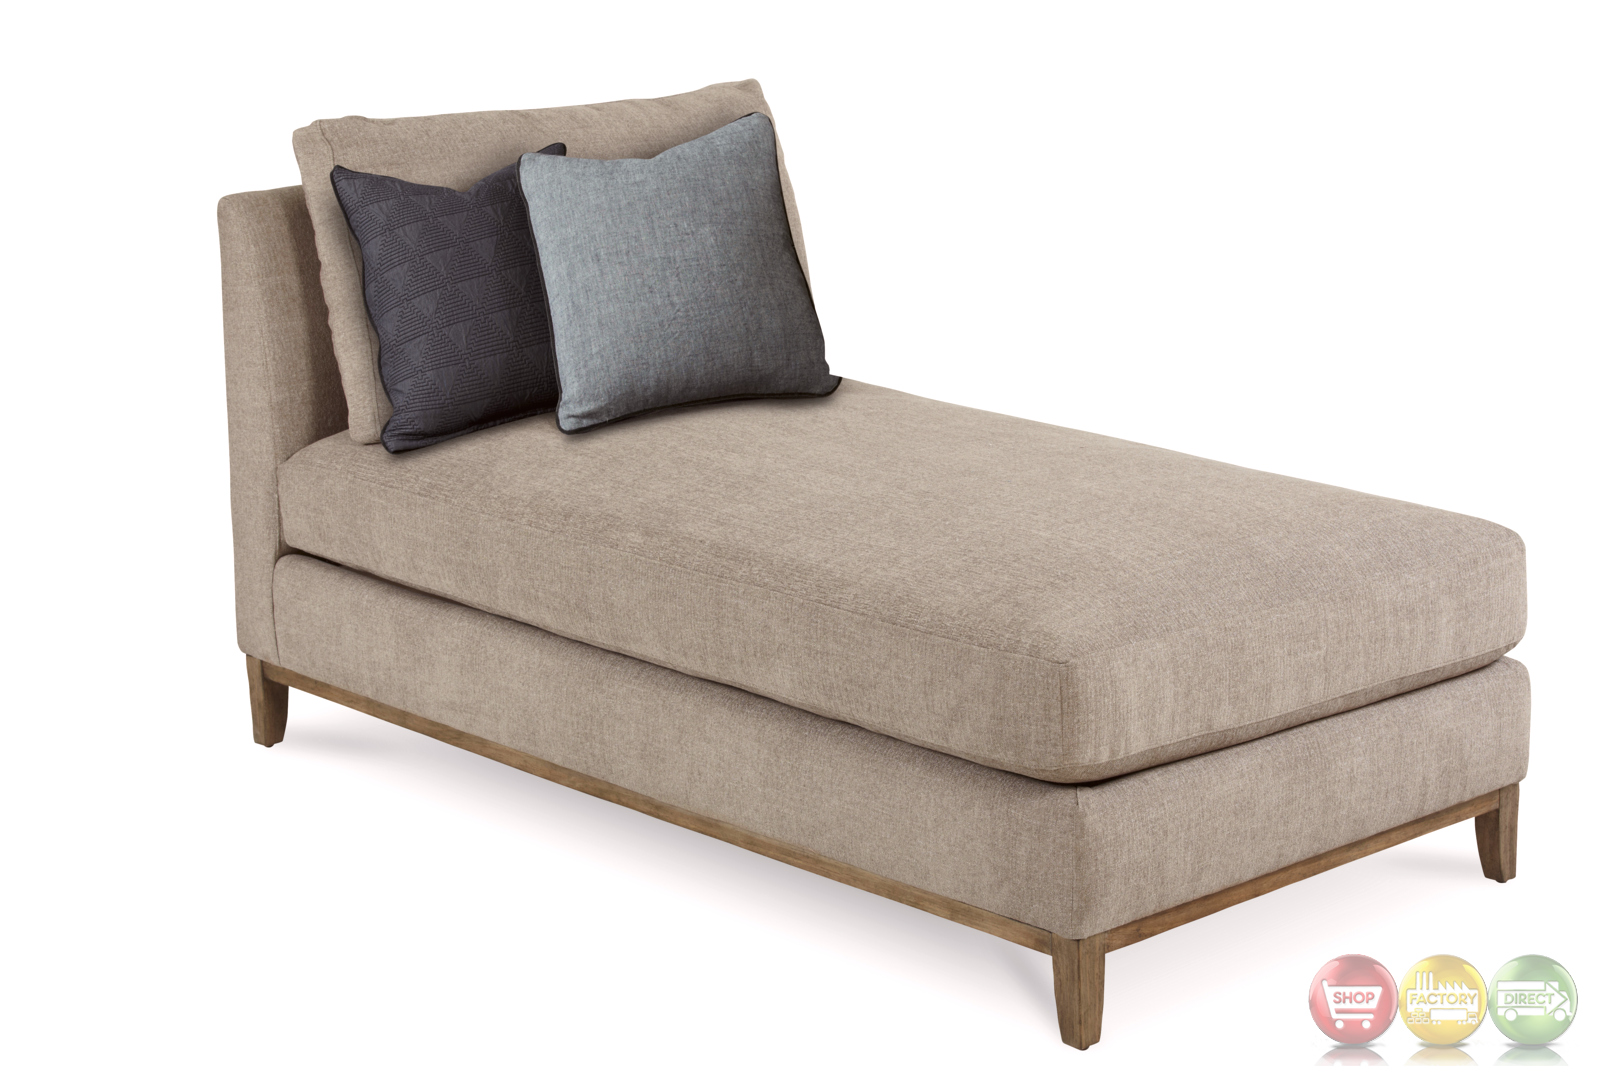 Epicenters chaplin natural beige chaise with rustic pine - Chaise tissu beige ...